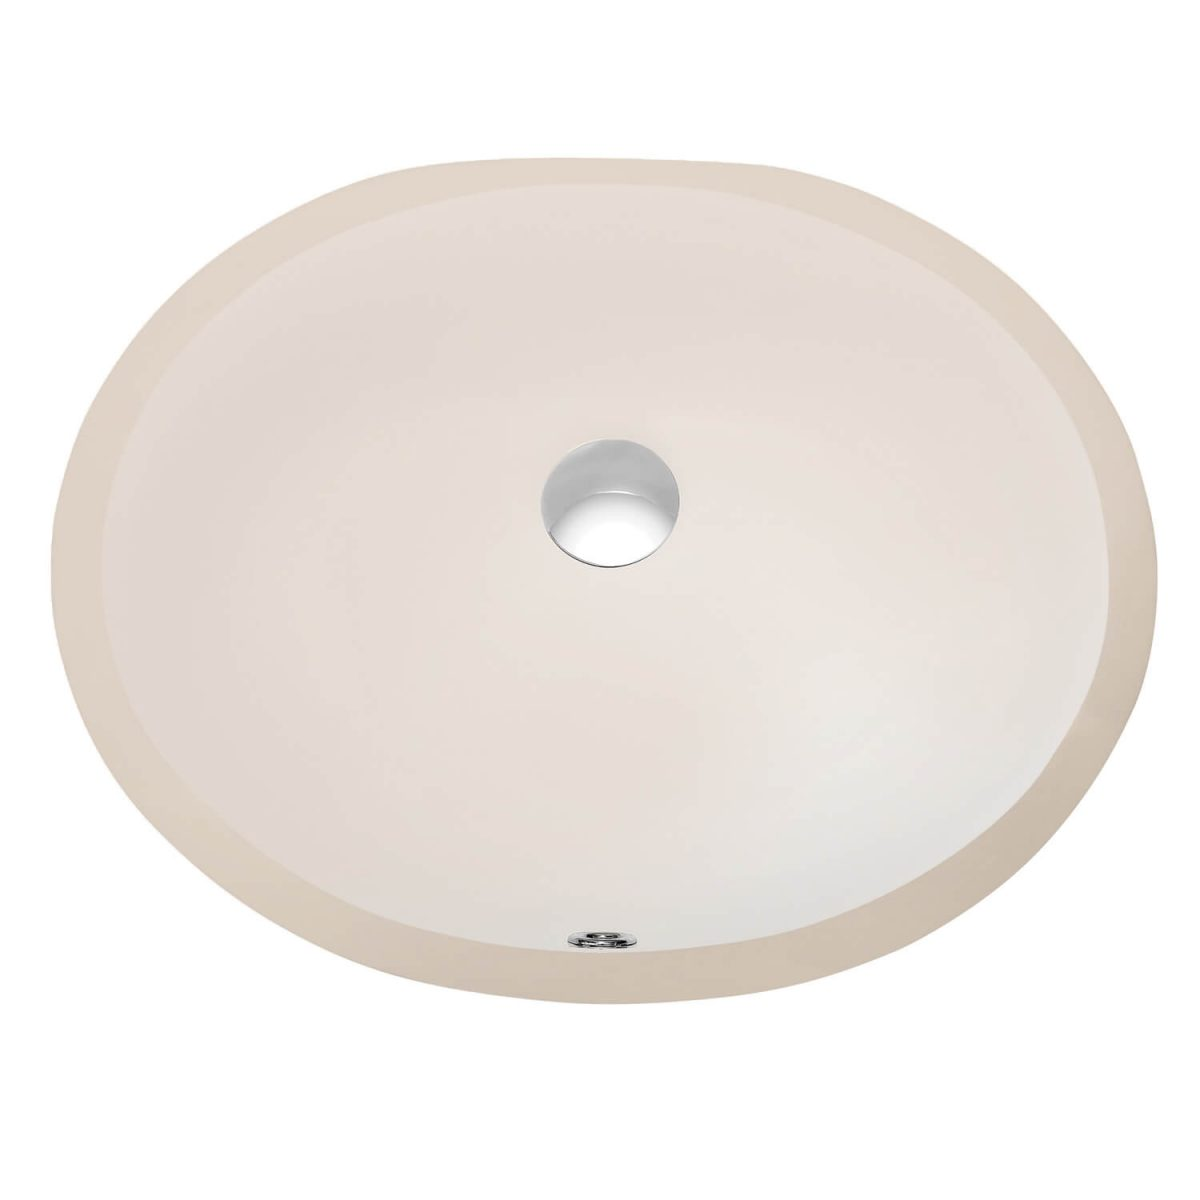 Undercounter Basin -Biscuit 17″ X 14″ Oval – C09 1714B